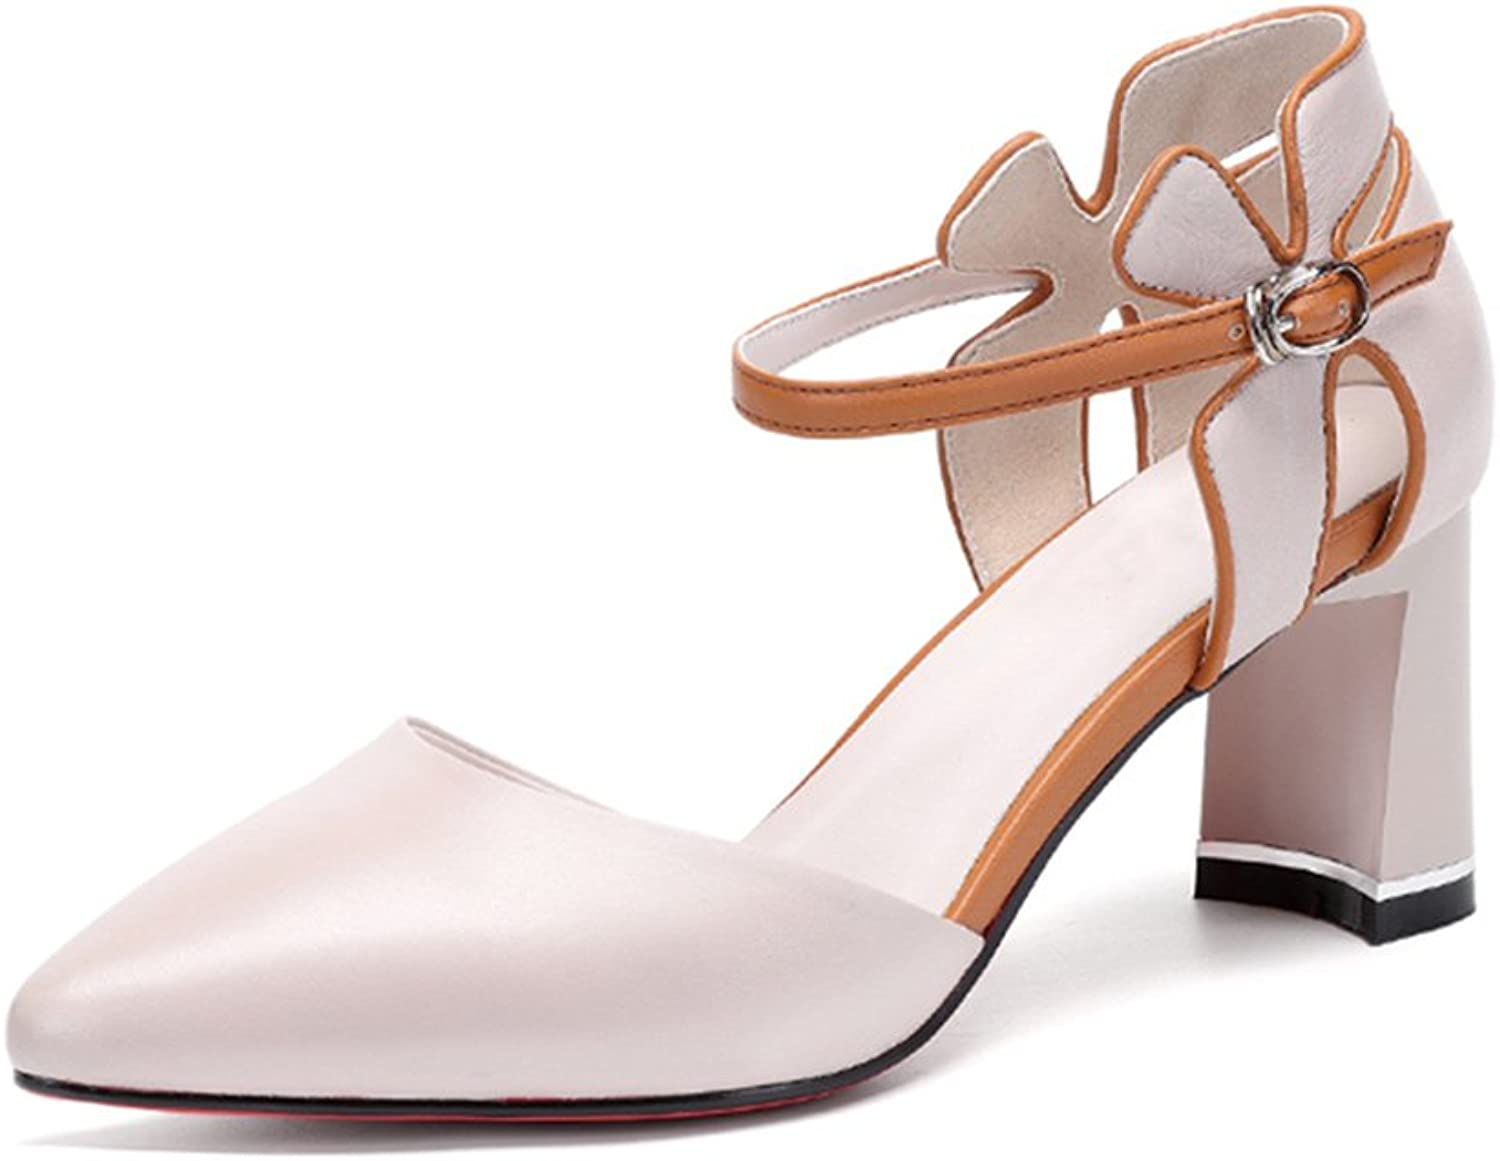 GAOFENG Sandals Footwear Women's shoes High Heels Open Toe Slingback Clip Ankle Adjustable Genuine Leather Baotou colorblock Pointed Flowers for Summer (color   White, Size   36)